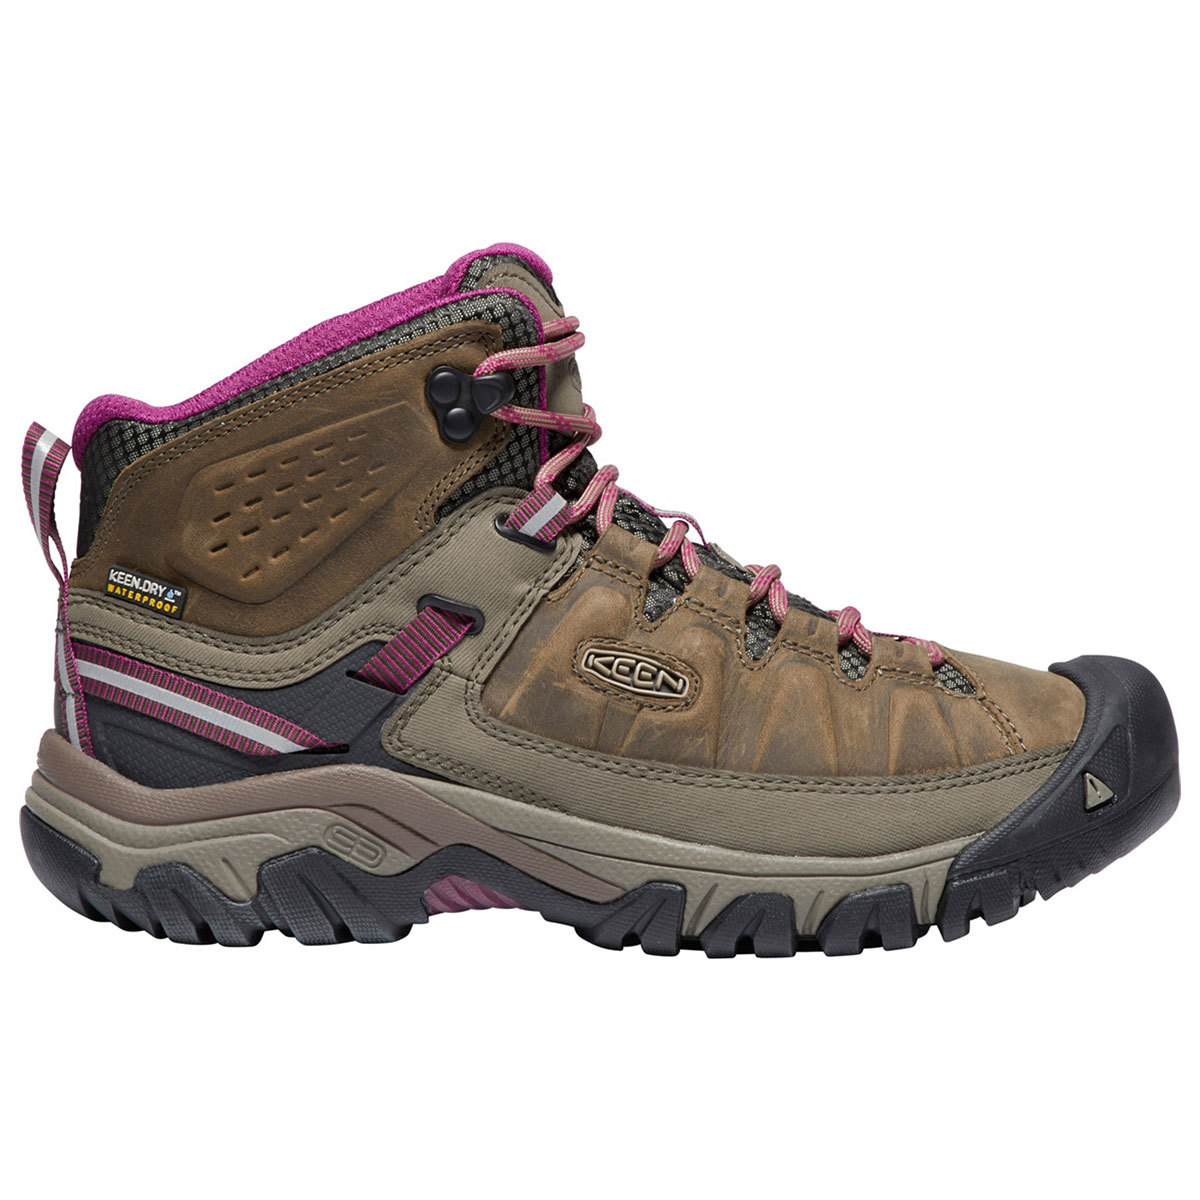 Keen Women's Targhee Iii Waterproof Mid Hiking Boots - Brown, 11